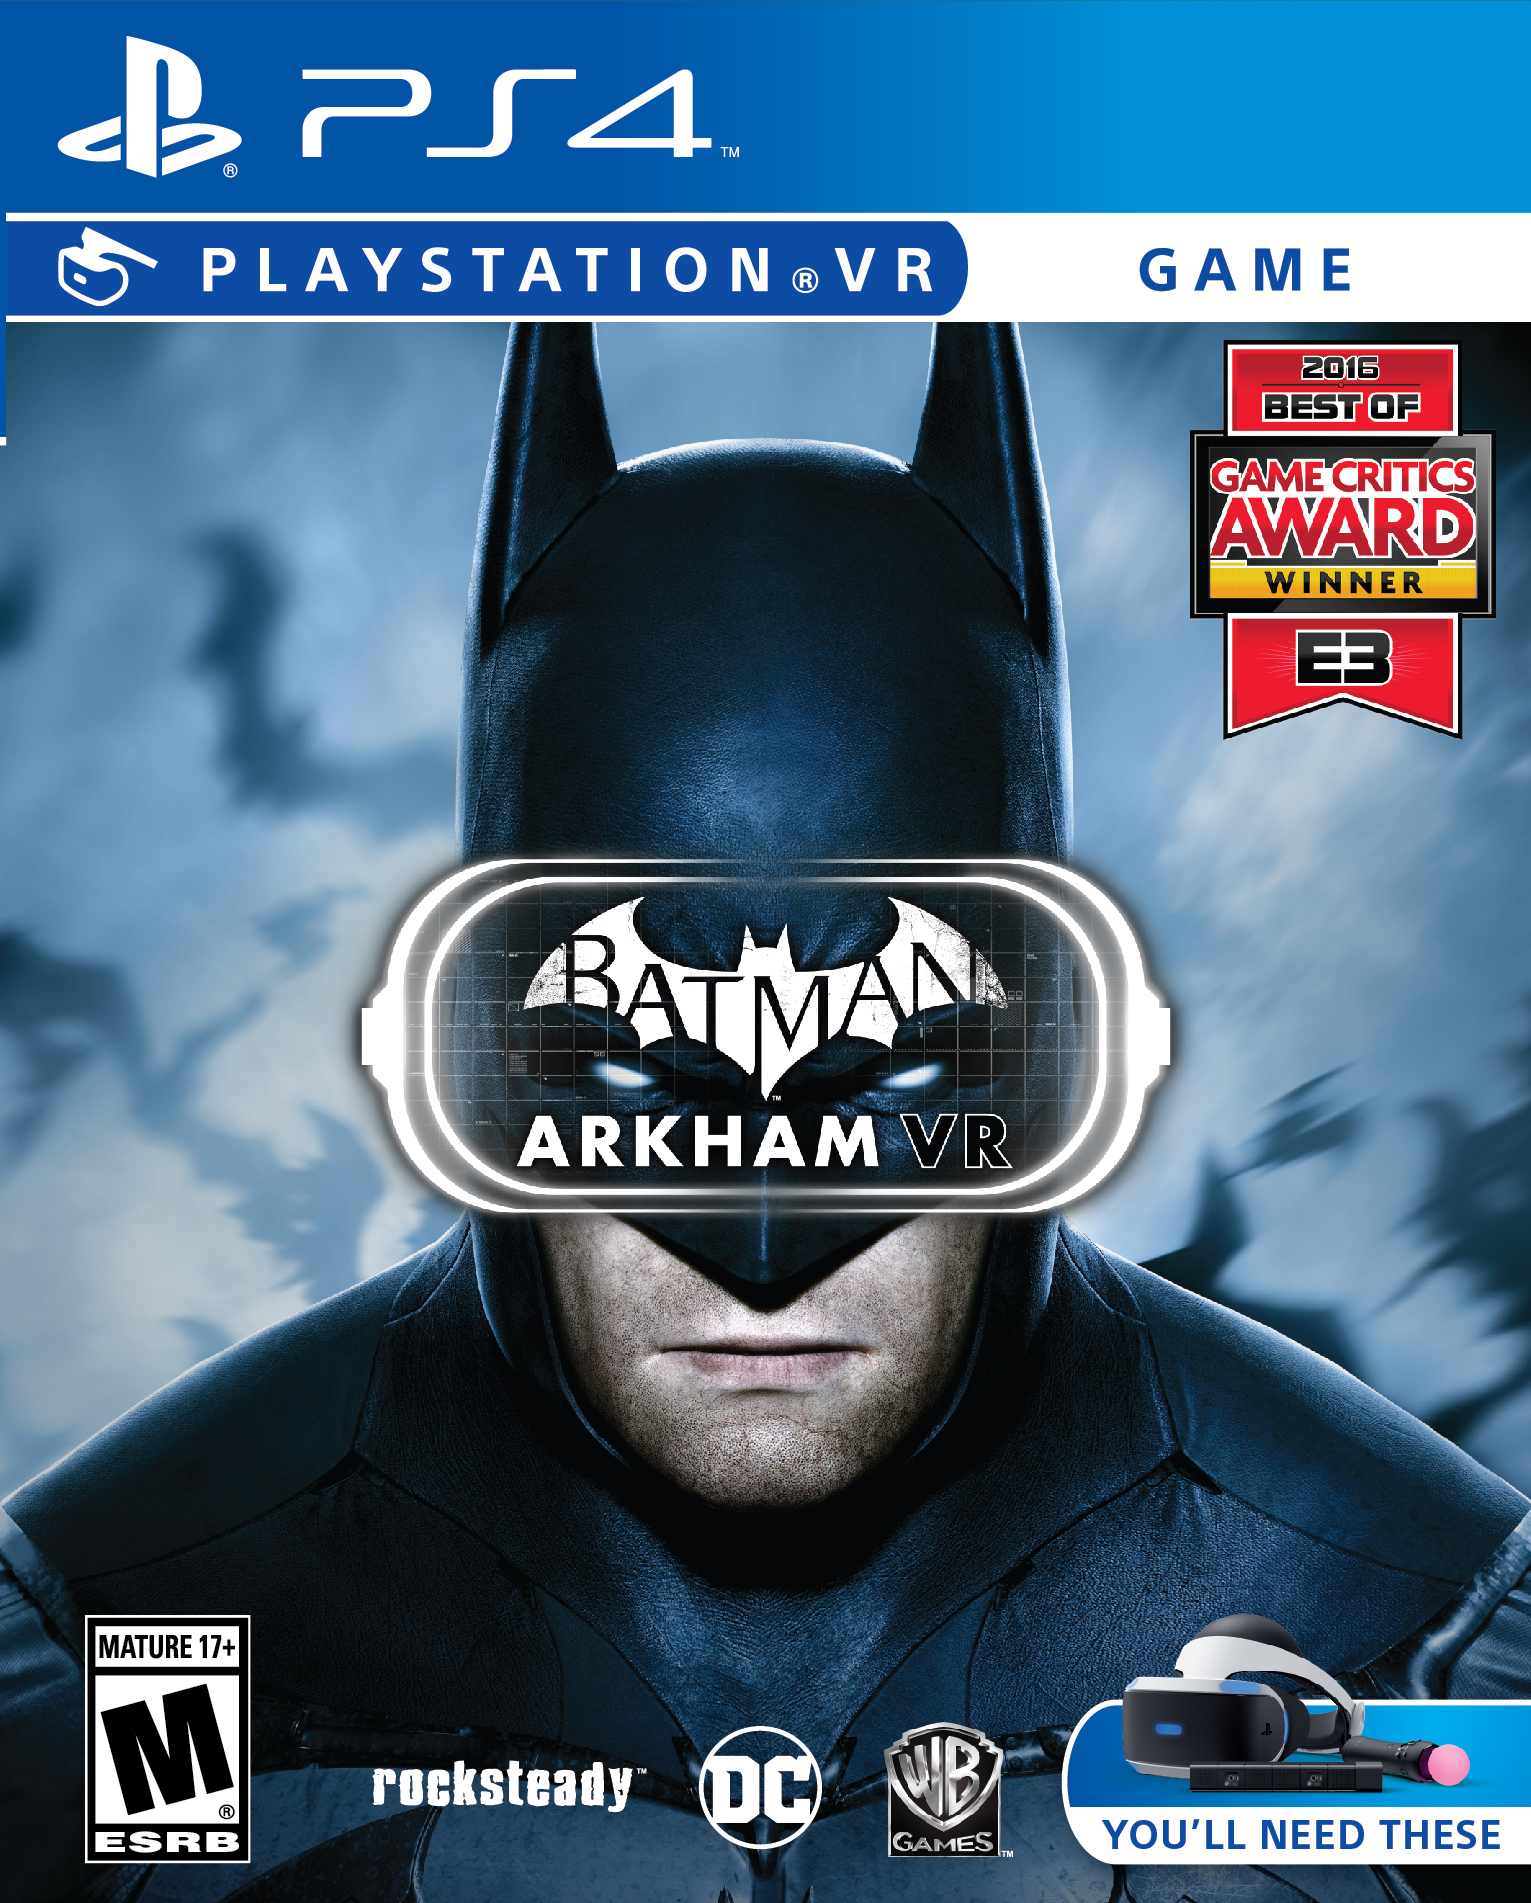 Batman: Arkham VR (PS4) Review